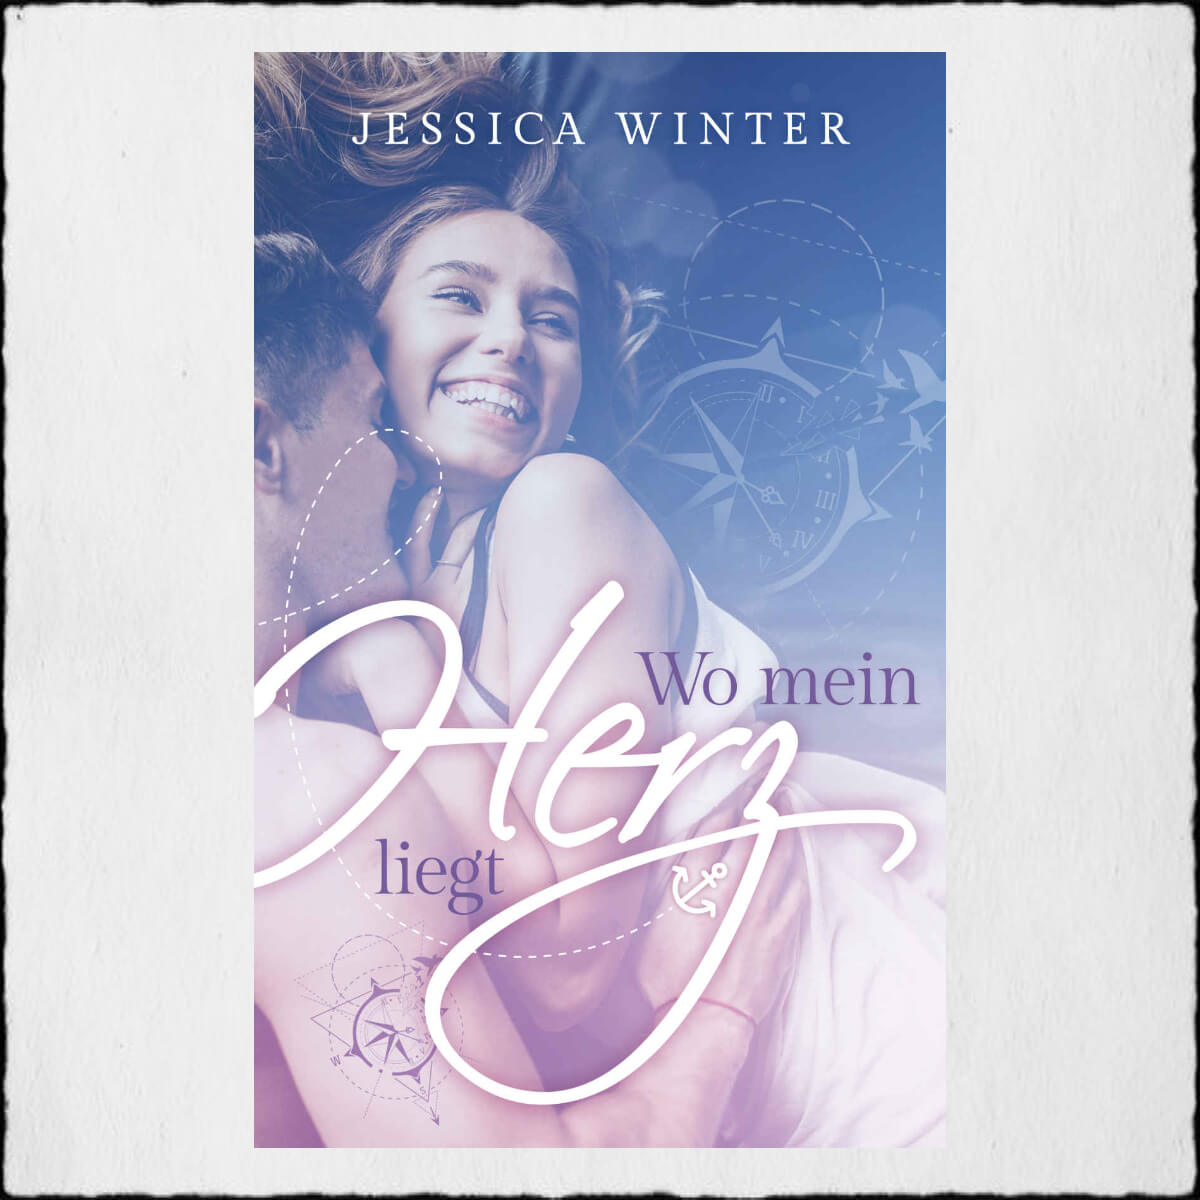 "Jessica Winter ""Wo mein Herz liegt (ready-to-be-found 2)"" © 2019 Jessica Winter in Selbstpublikation"